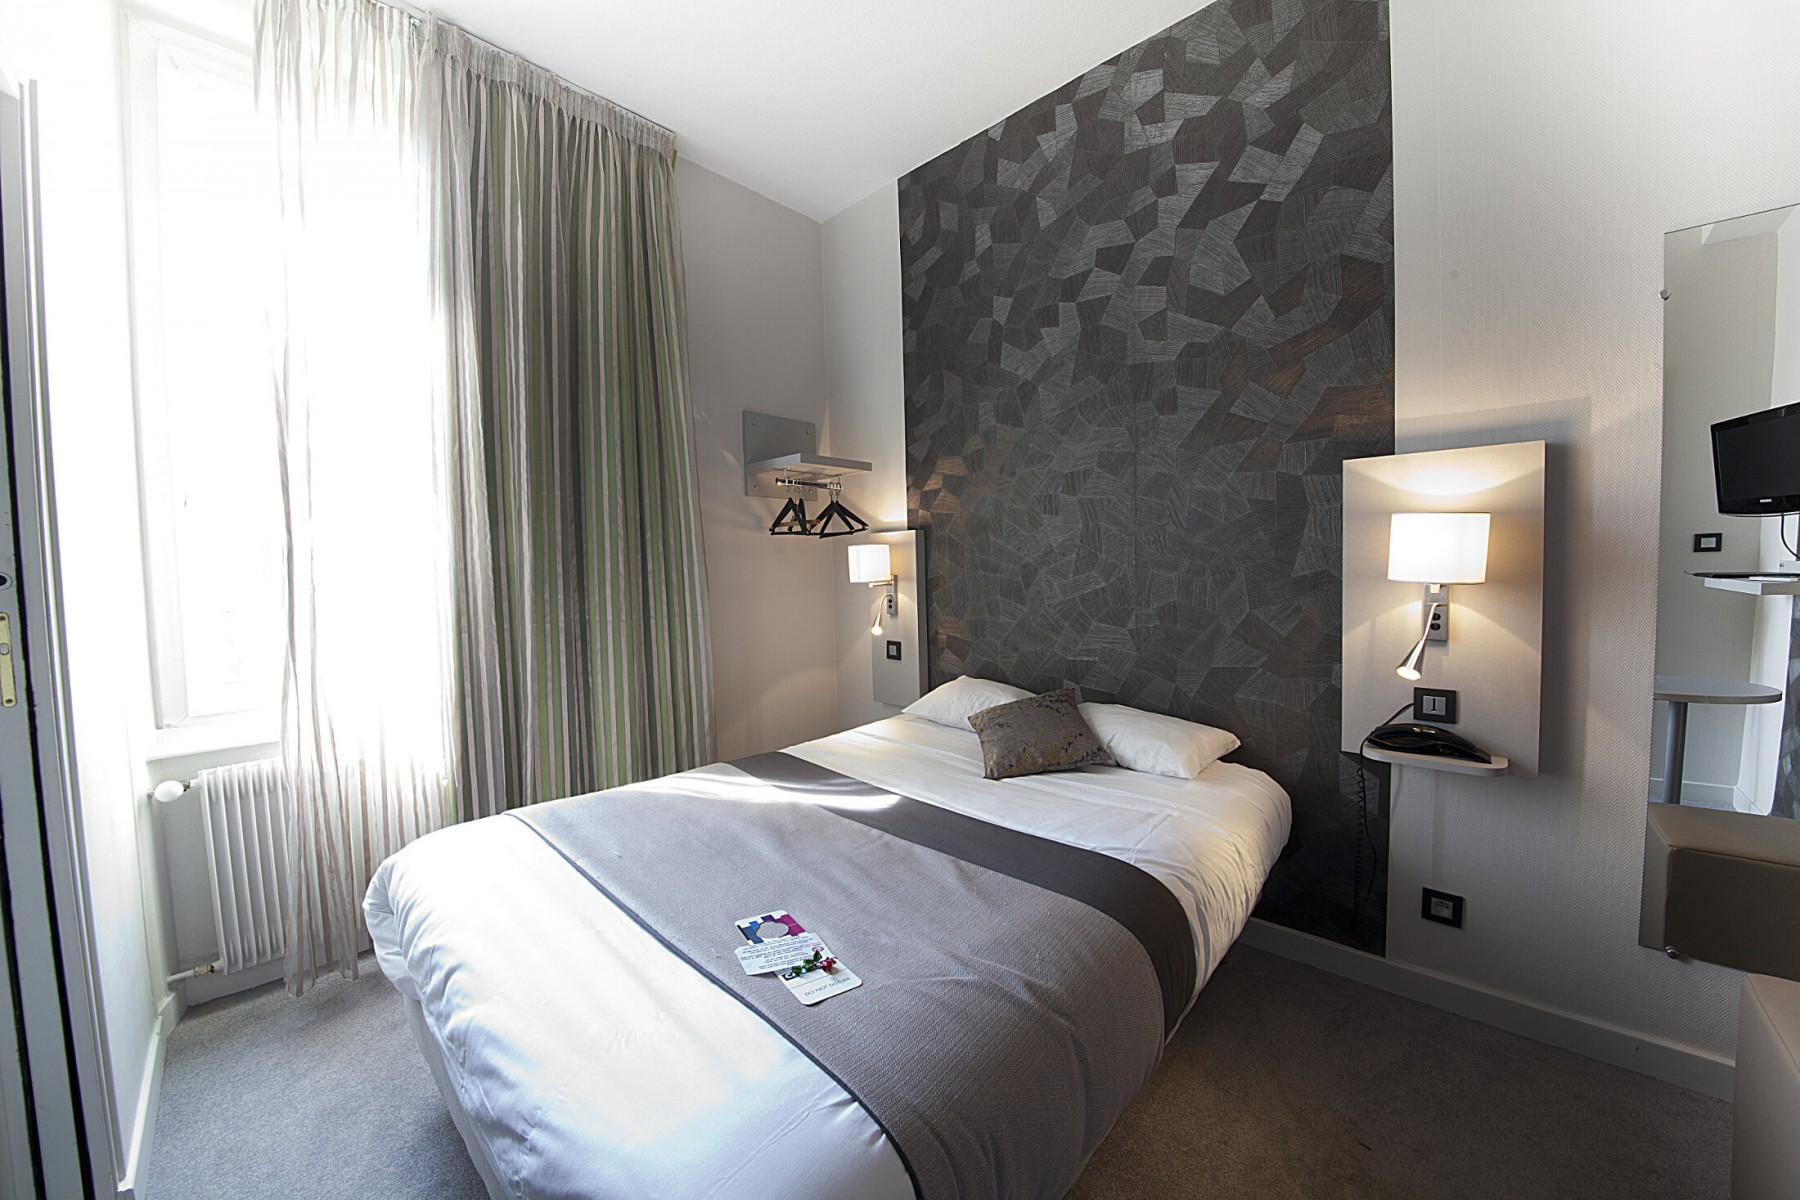 Les diff rentes chambres hotel clermont ferrand h tel - Chambre du commerce clermont ferrand ...